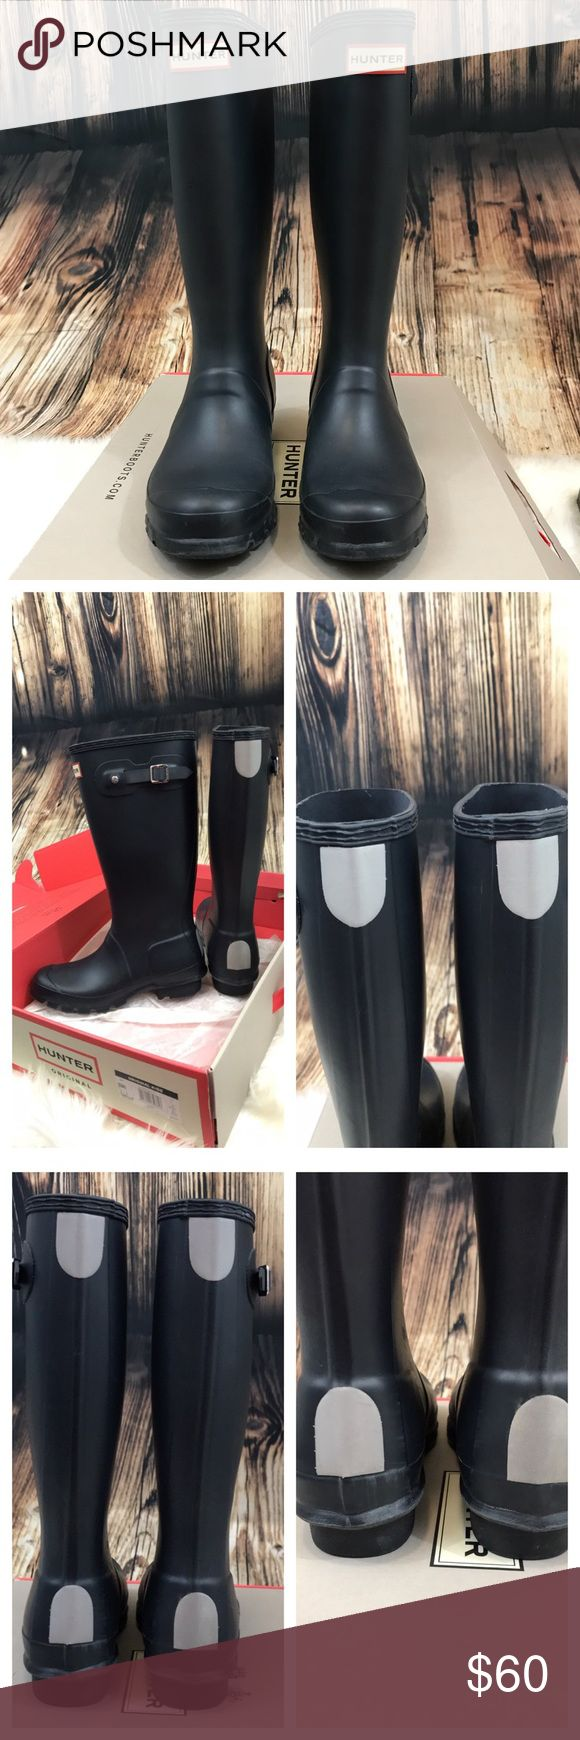 Hunter boots, navy matte kids size 4b/5g Excellent used condition.  Navy matte Hunter boots. Size 4B/5G.  Comes with original box, purchased from Nordstrom.   Light scuffs that would probably come out with some polish? Hunter Shoes Rain & Snow Boots